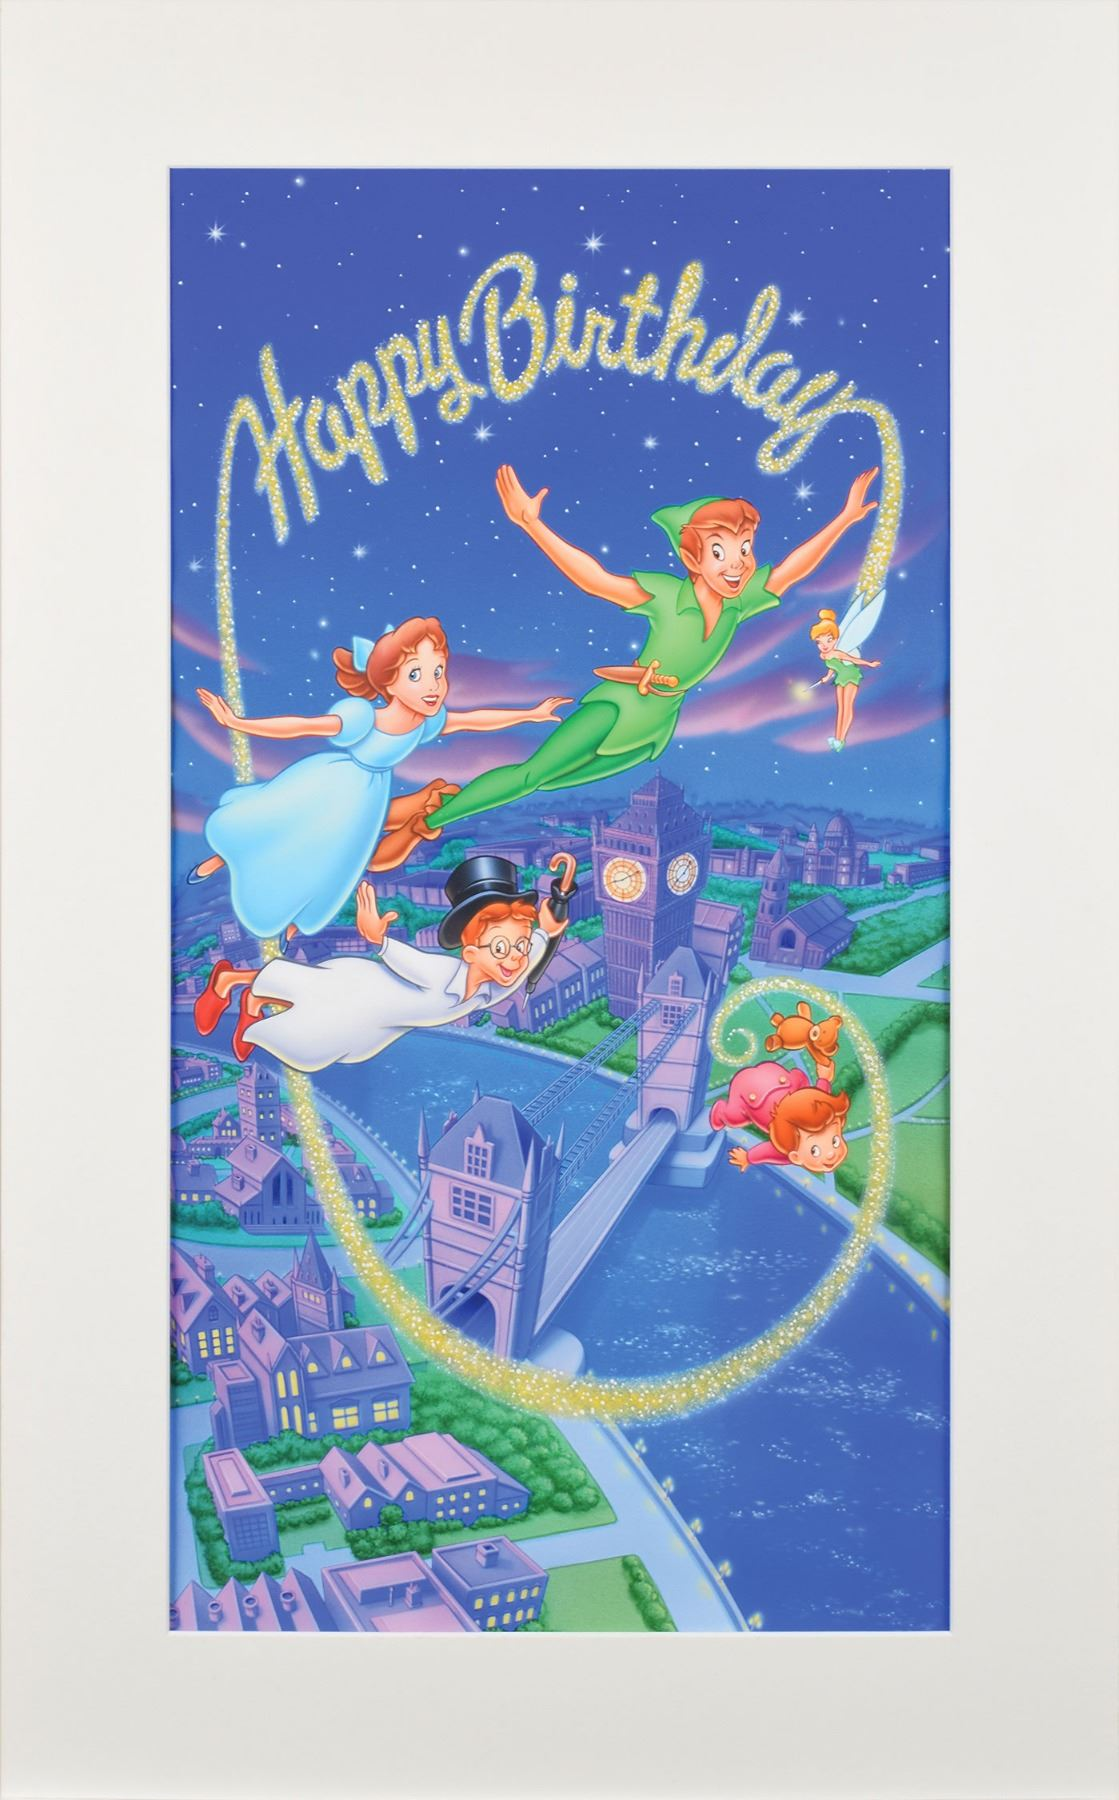 Image 1 Peter Pan Production Artwork From Pop Shots 3D Greeting Card